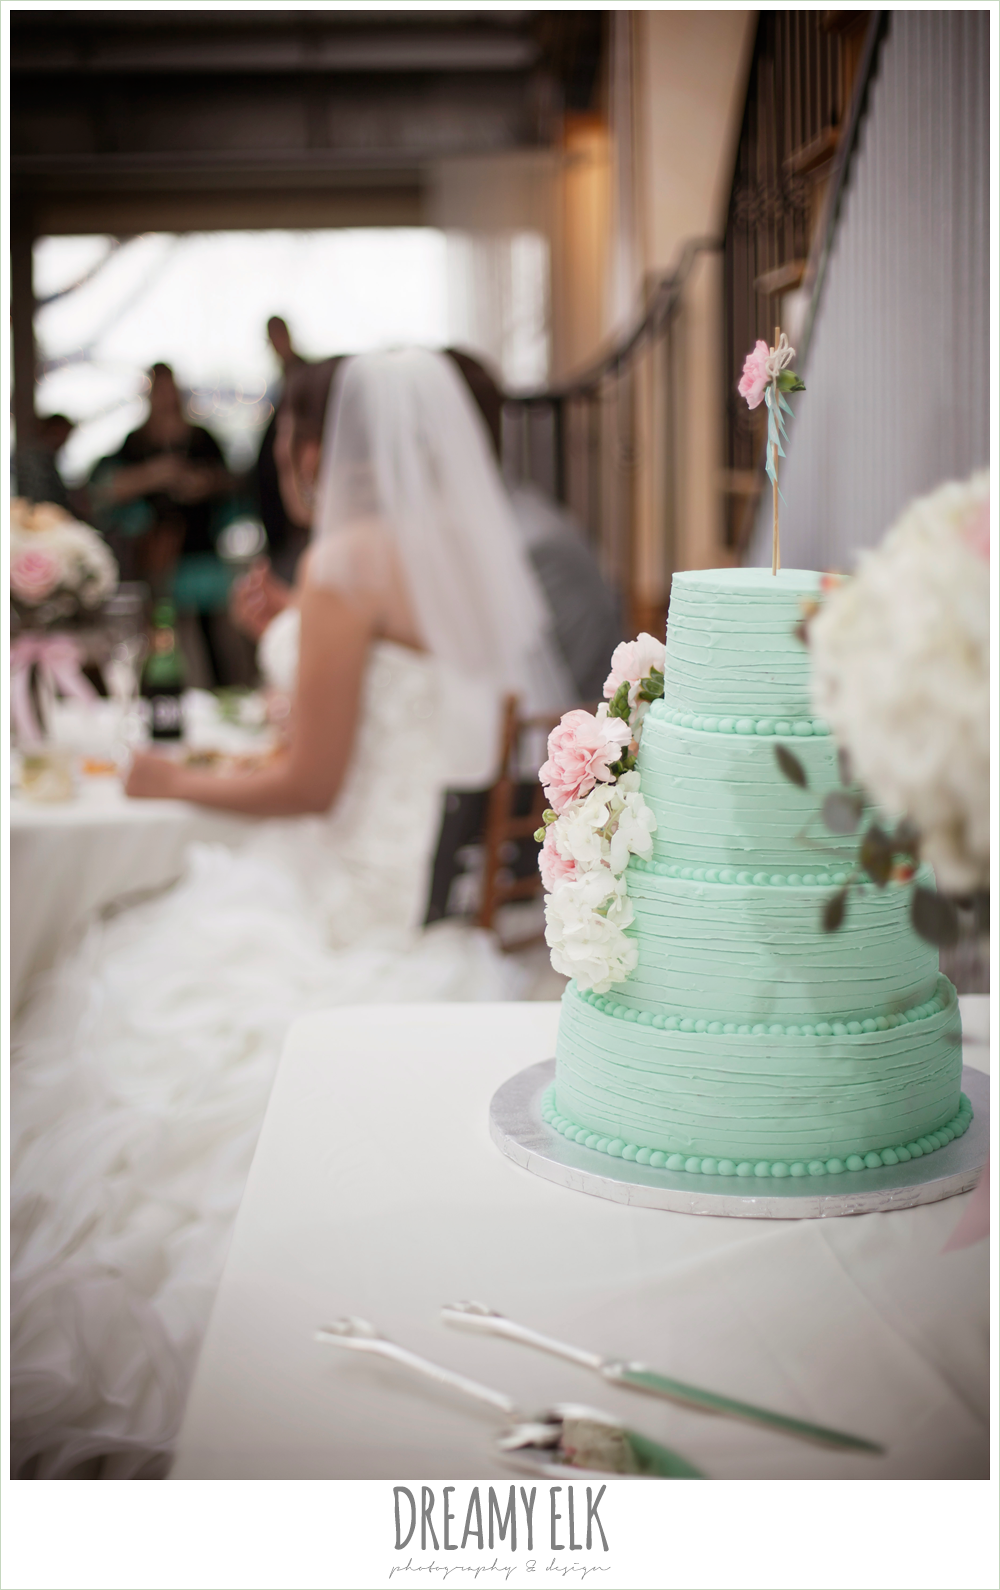 mint green wedding cake, sheila's sweet shoppe, terradorna wedding venue, austin spring wedding {dreamy elk photography and design}